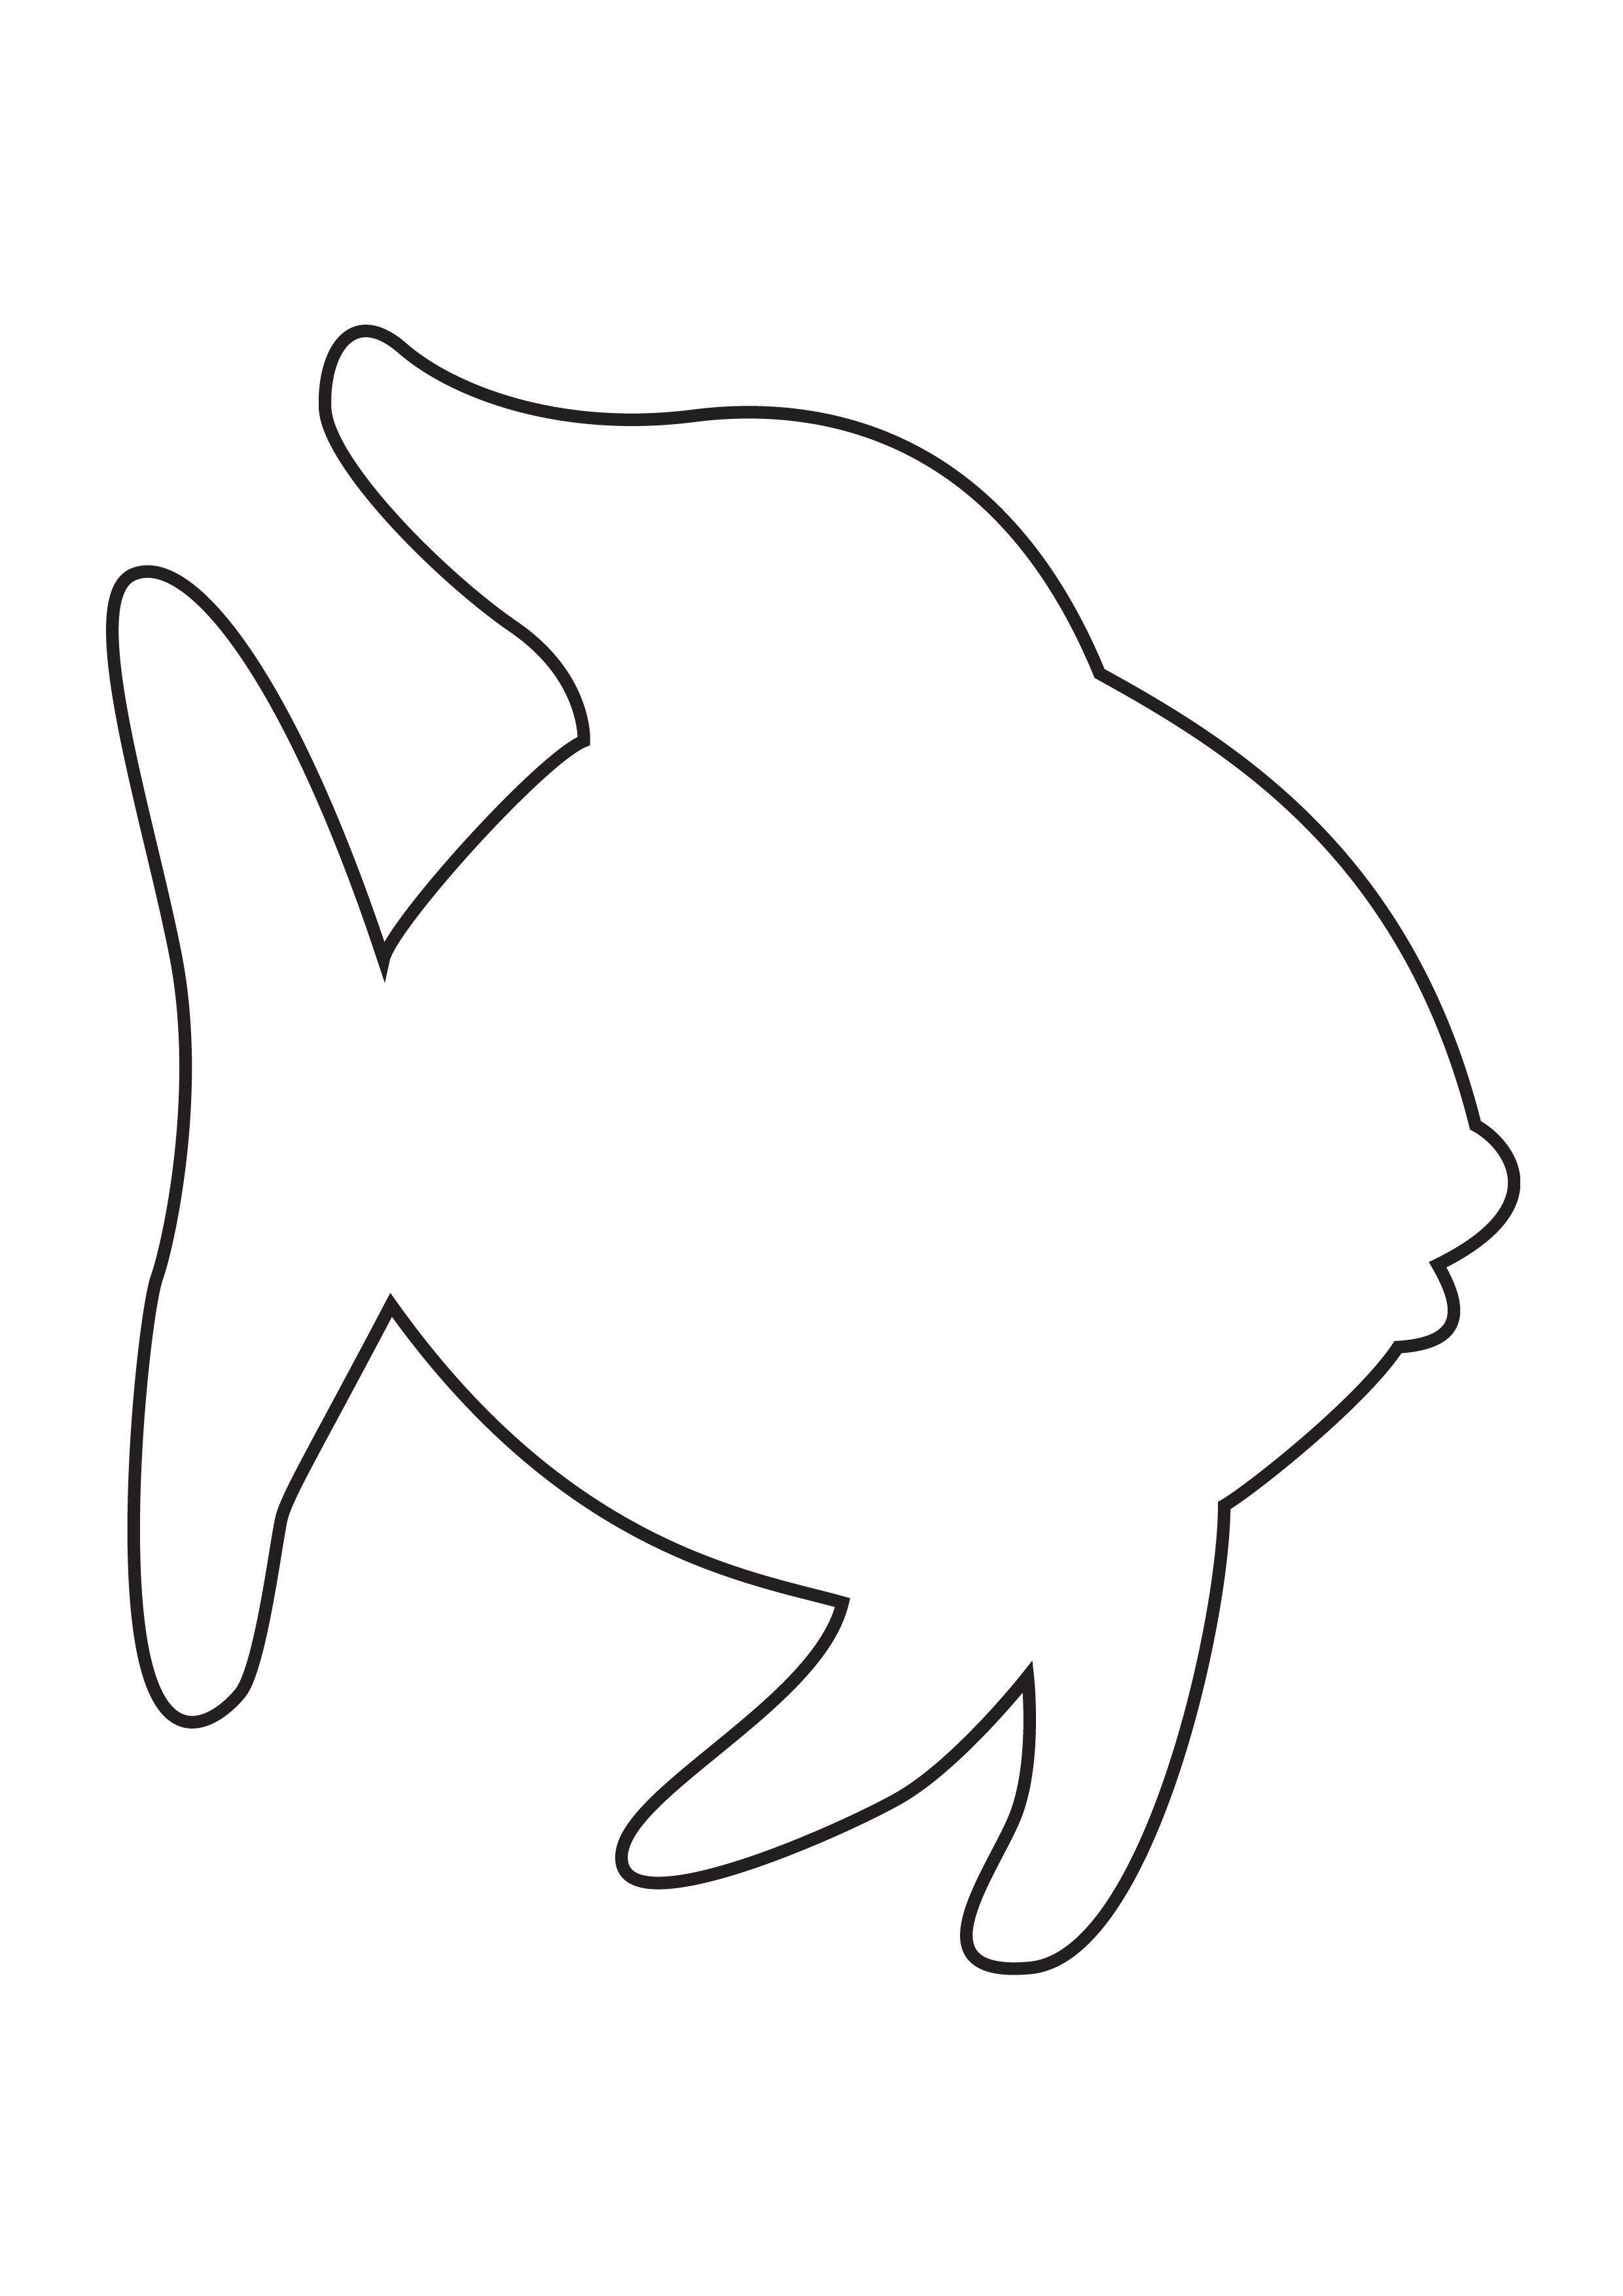 Fish Outline Colouring Pages Page 2